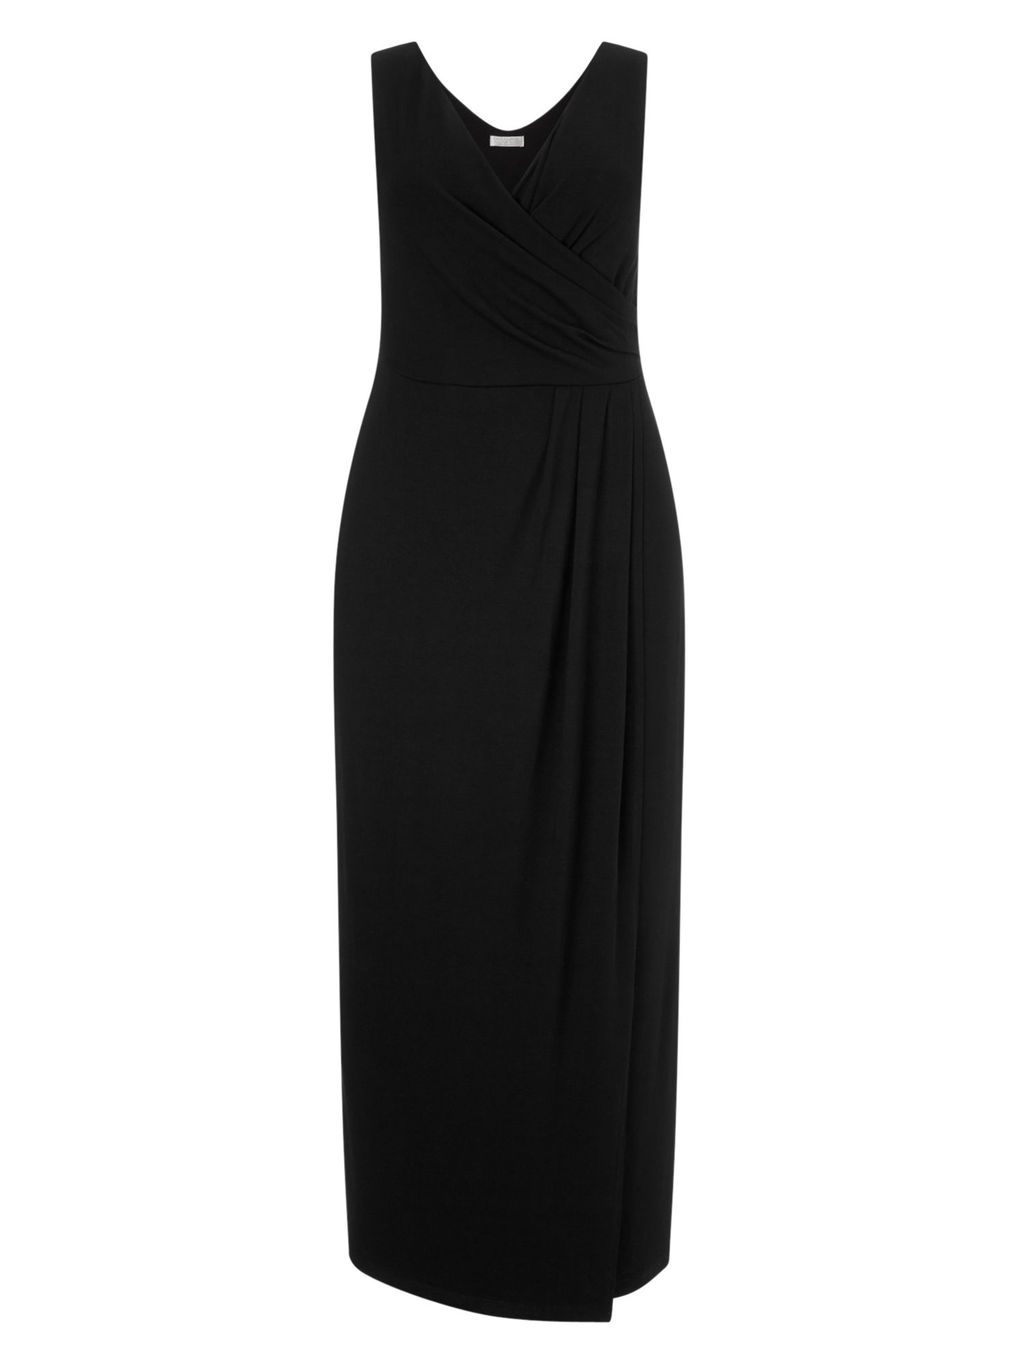 Black Jersey Maxi Dress - neckline: v-neck; pattern: plain; sleeve style: sleeveless; style: maxi dress; length: ankle length; bust detail: subtle bust detail; predominant colour: black; occasions: casual; fit: body skimming; fibres: viscose/rayon - stretch; sleeve length: sleeveless; pattern type: fabric; texture group: jersey - stretchy/drapey; season: s/s 2016; wardrobe: basic